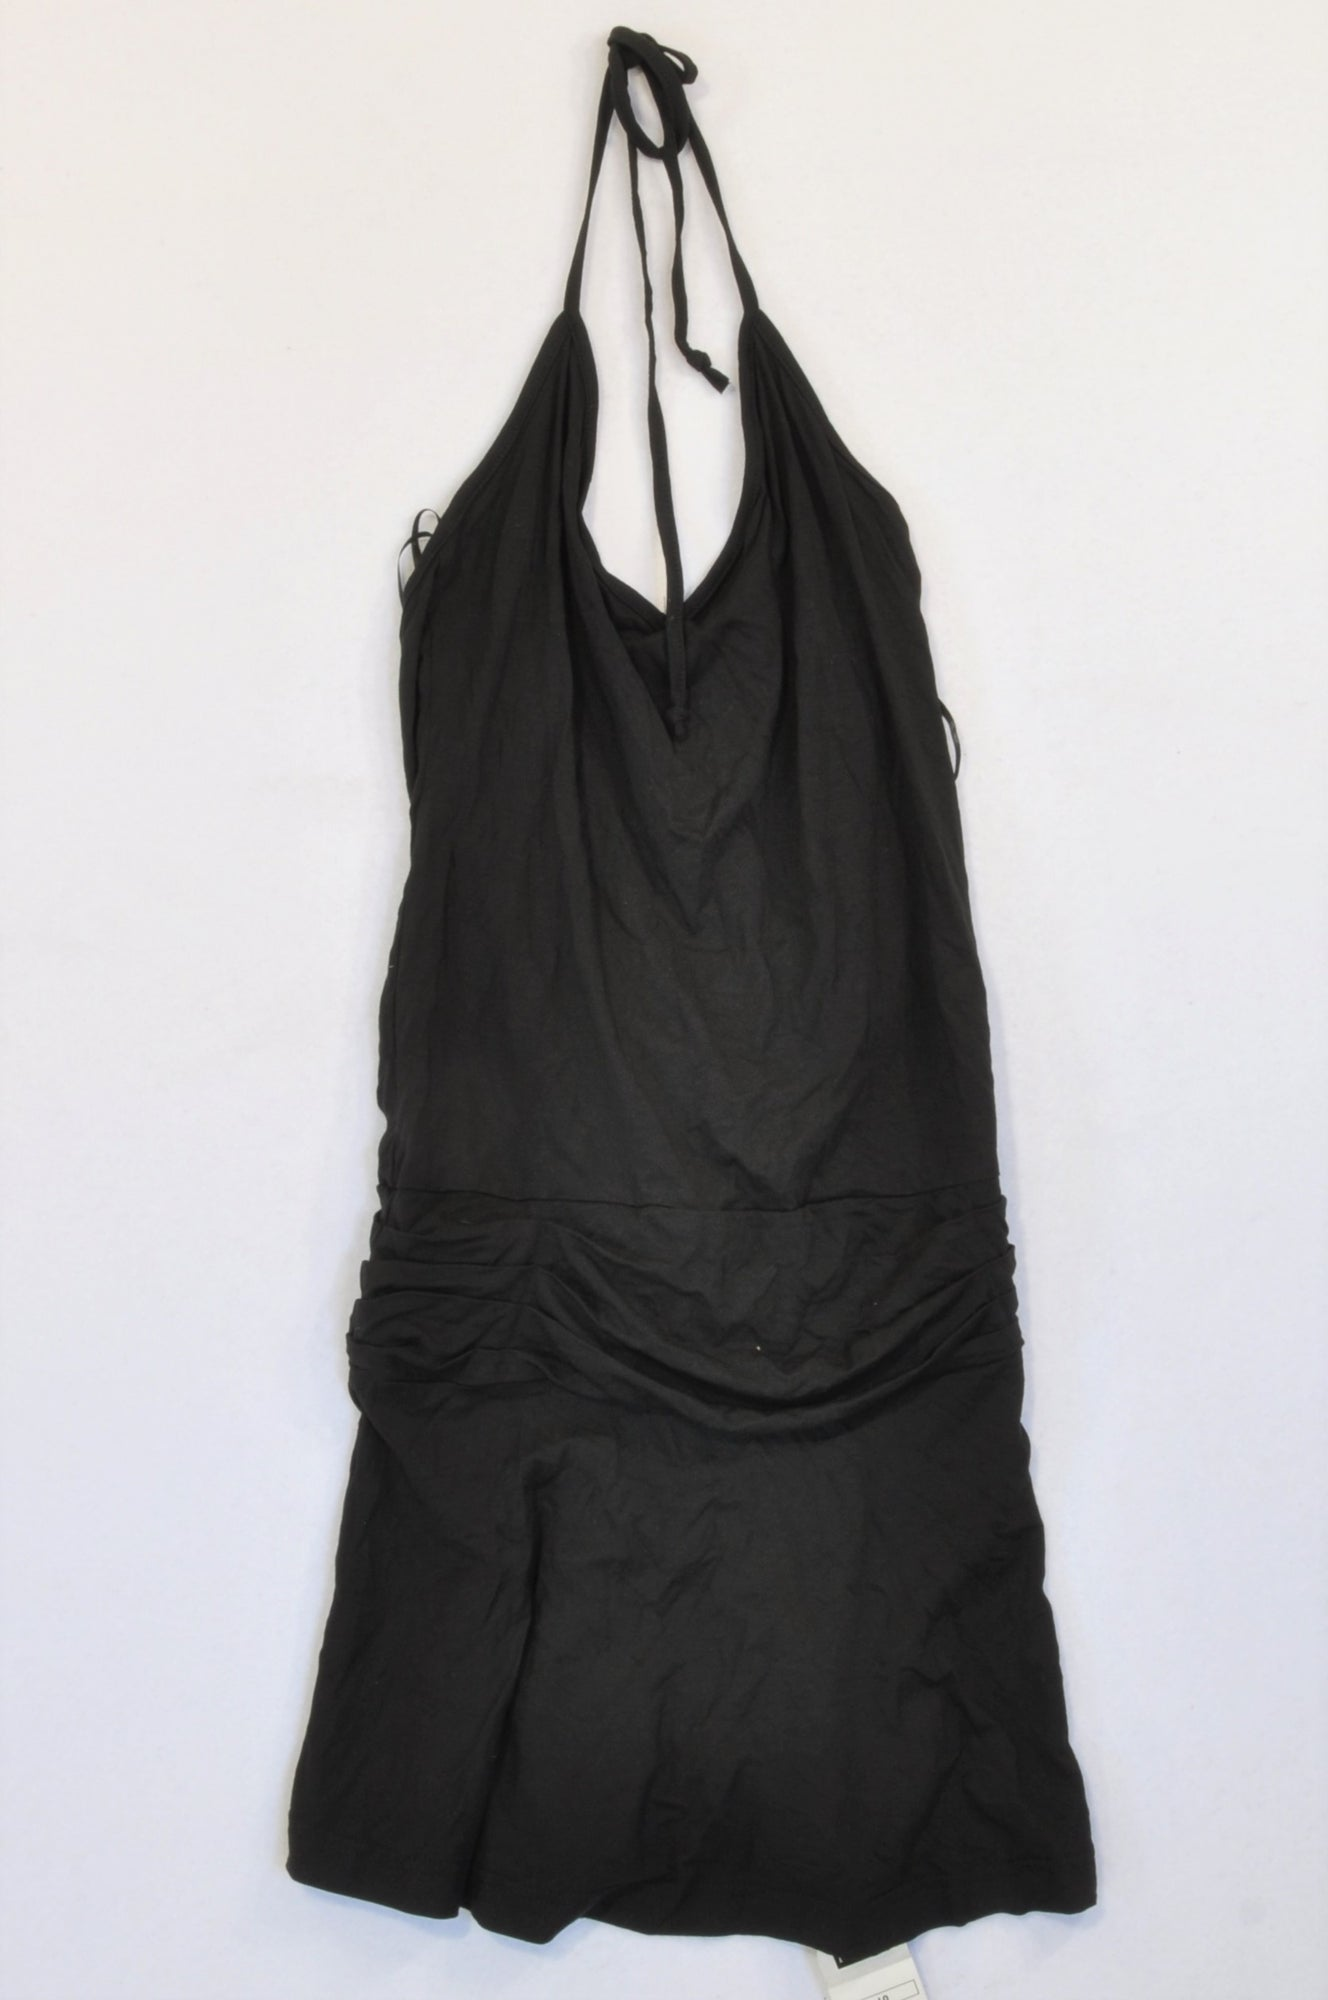 New Next Black Drop Pleat Waist Tunic Halter Top Women Size 10